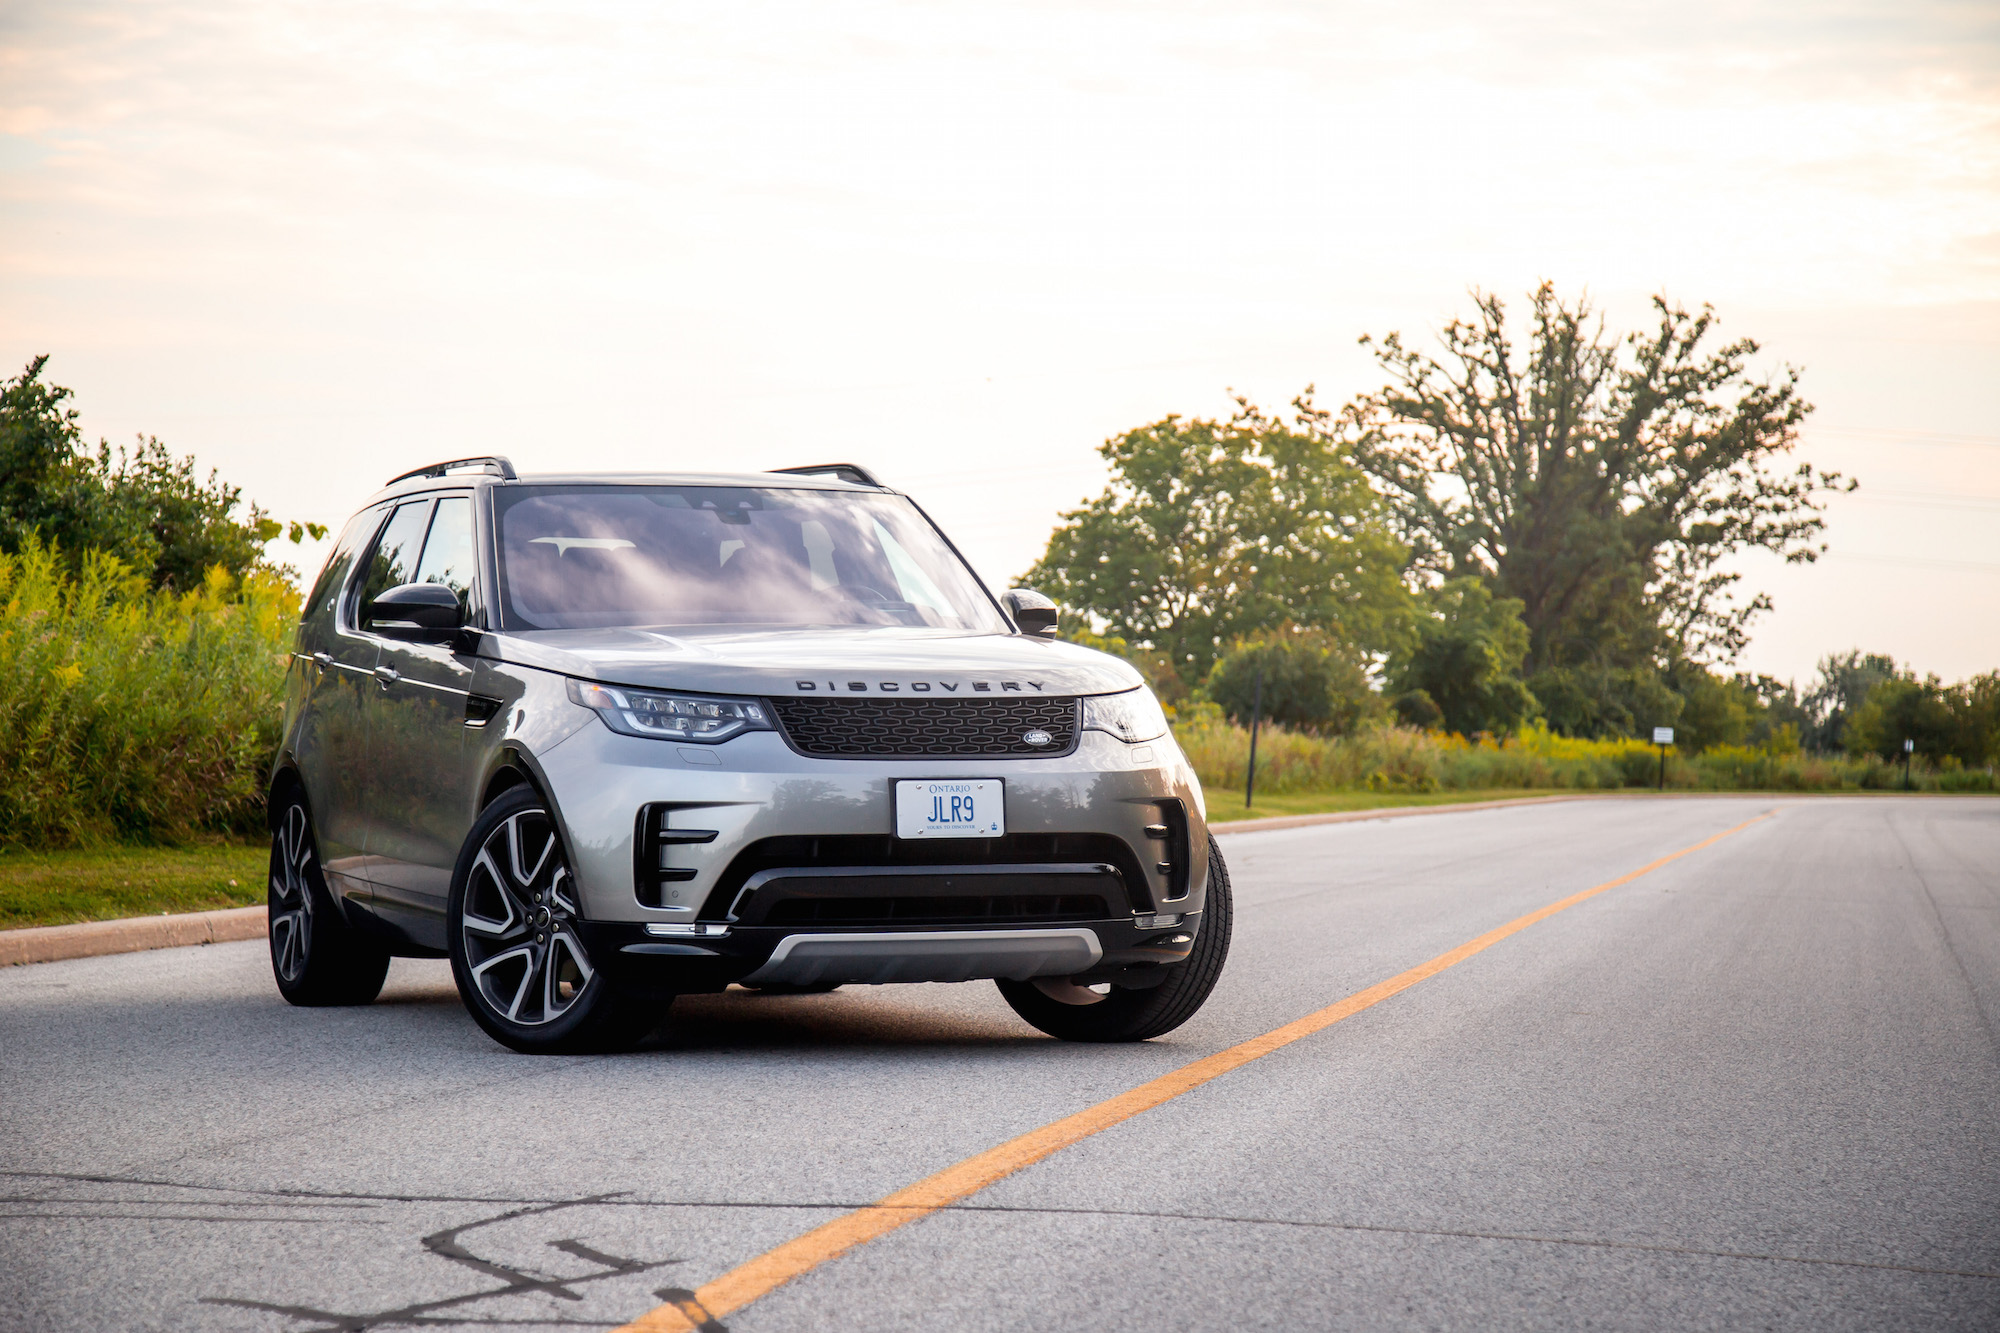 2018 Range Rover Hse >> Review: 2017 Land Rover Discovery HSE Si6 | Canadian Auto Review